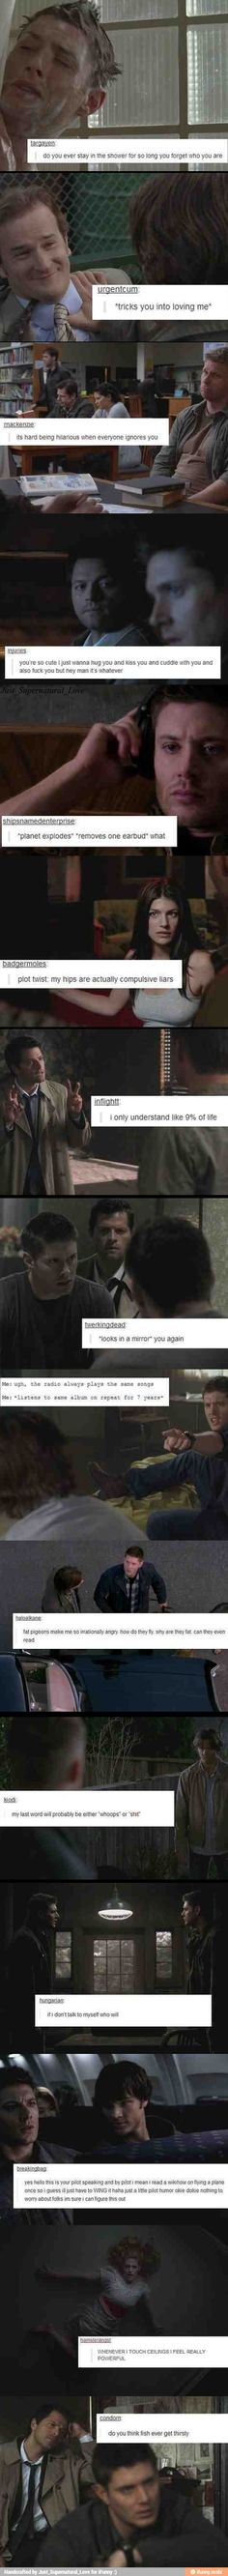 Supernatural + Tumblr Posts ❤️ / iFunny :)